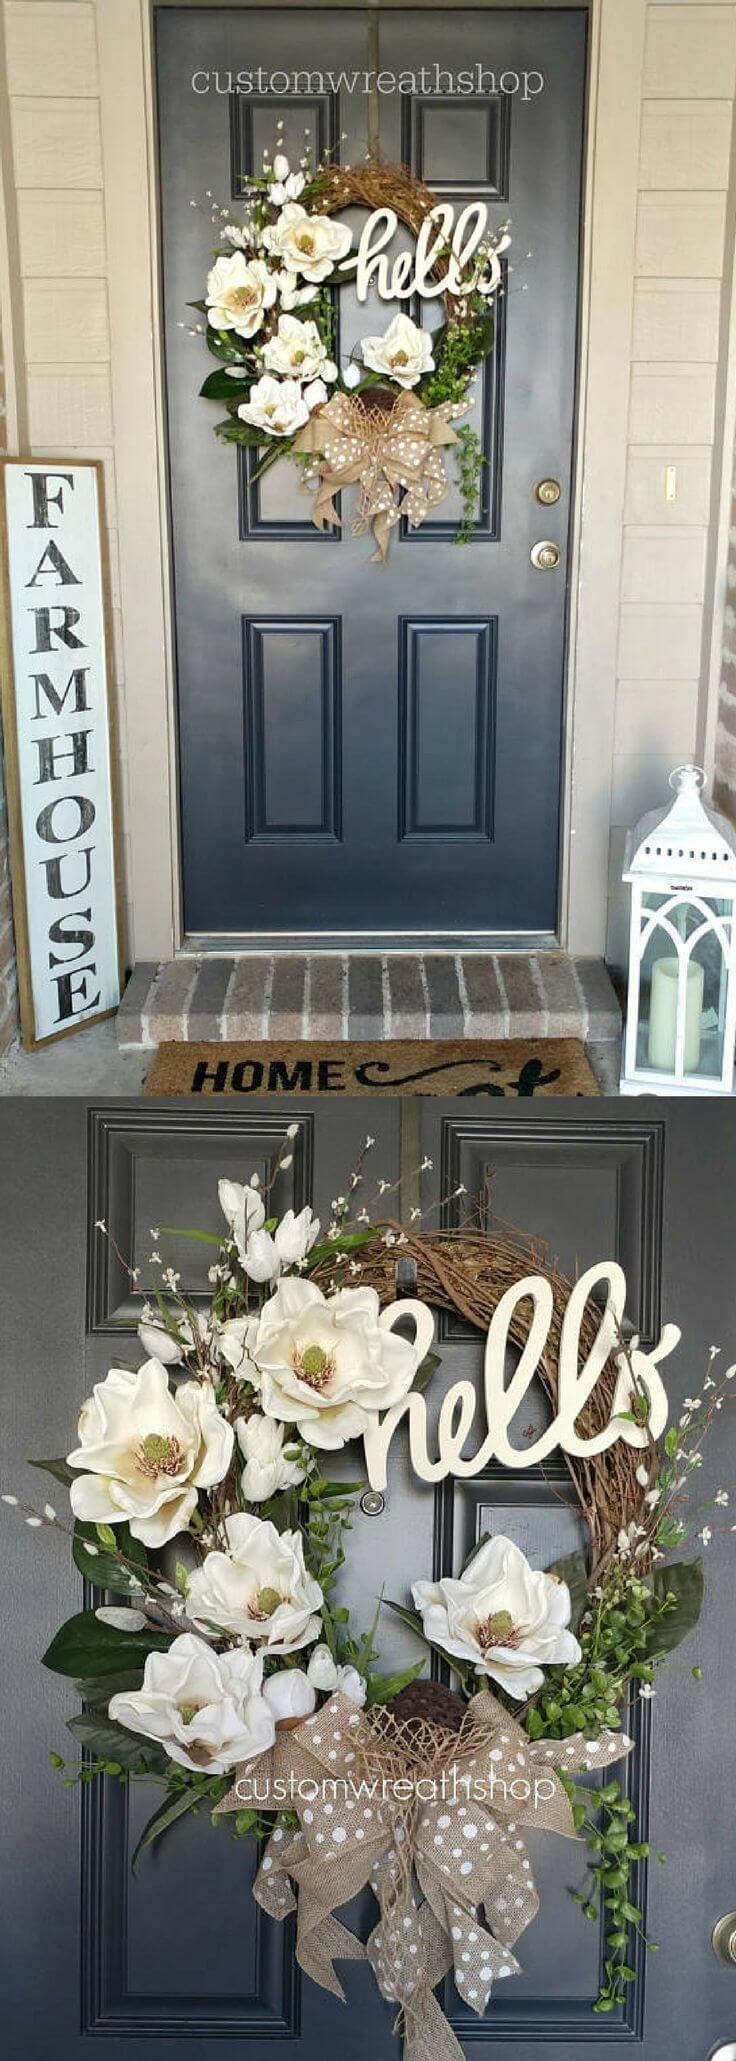 Photo of Beige and White Wreath with a Hello Sign